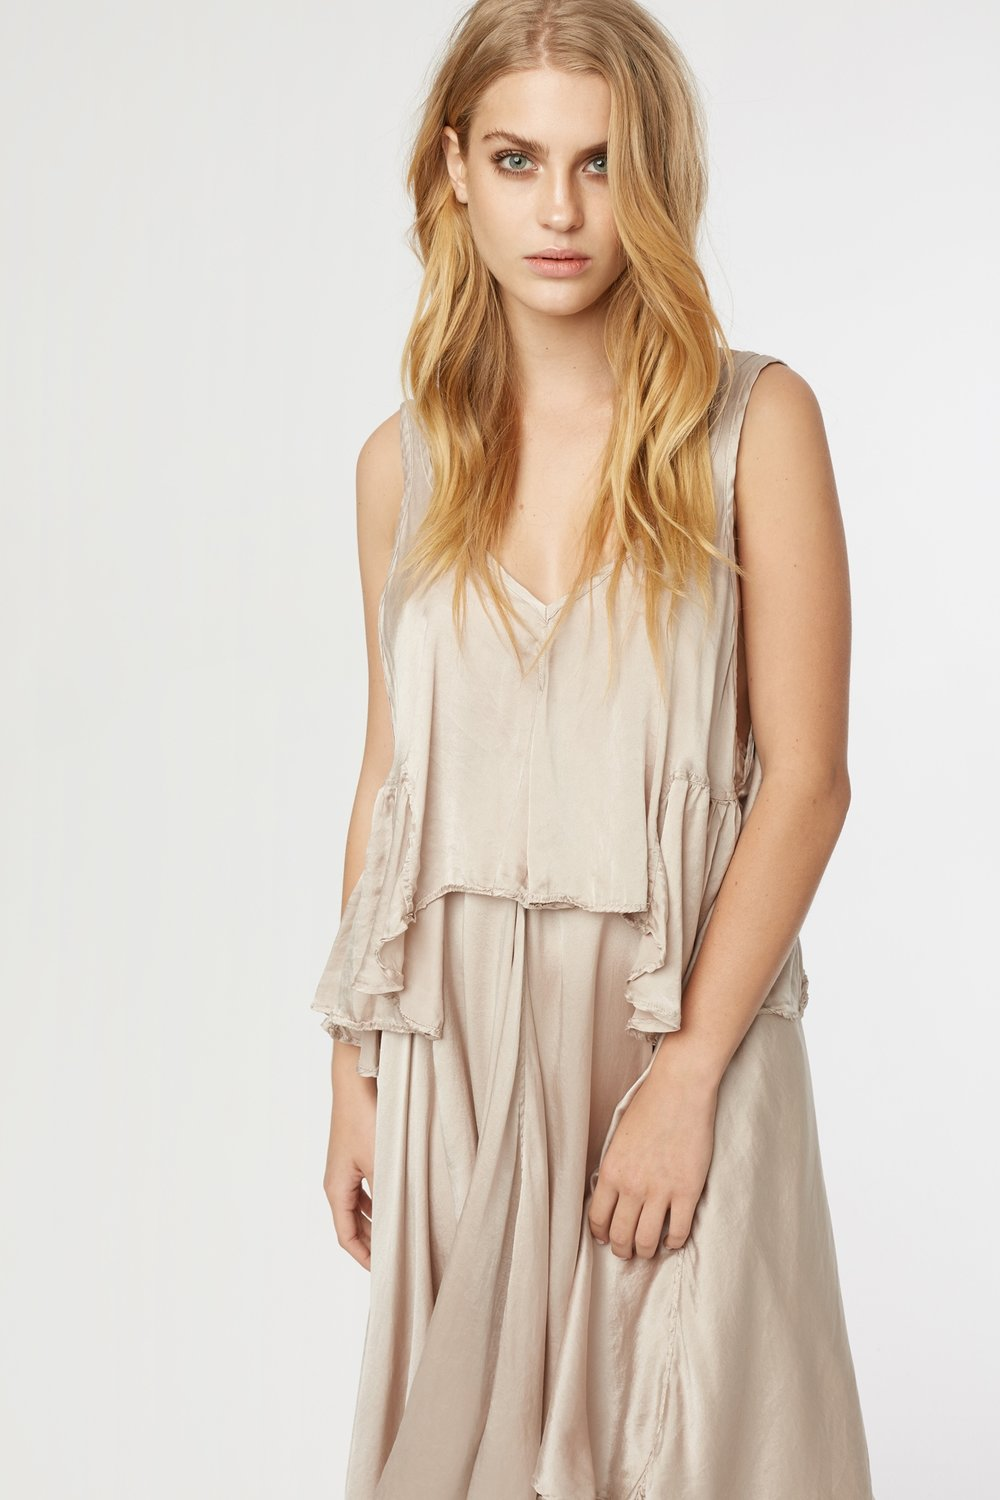 BOCS SINGLET & BOCS DRESS TAUPE